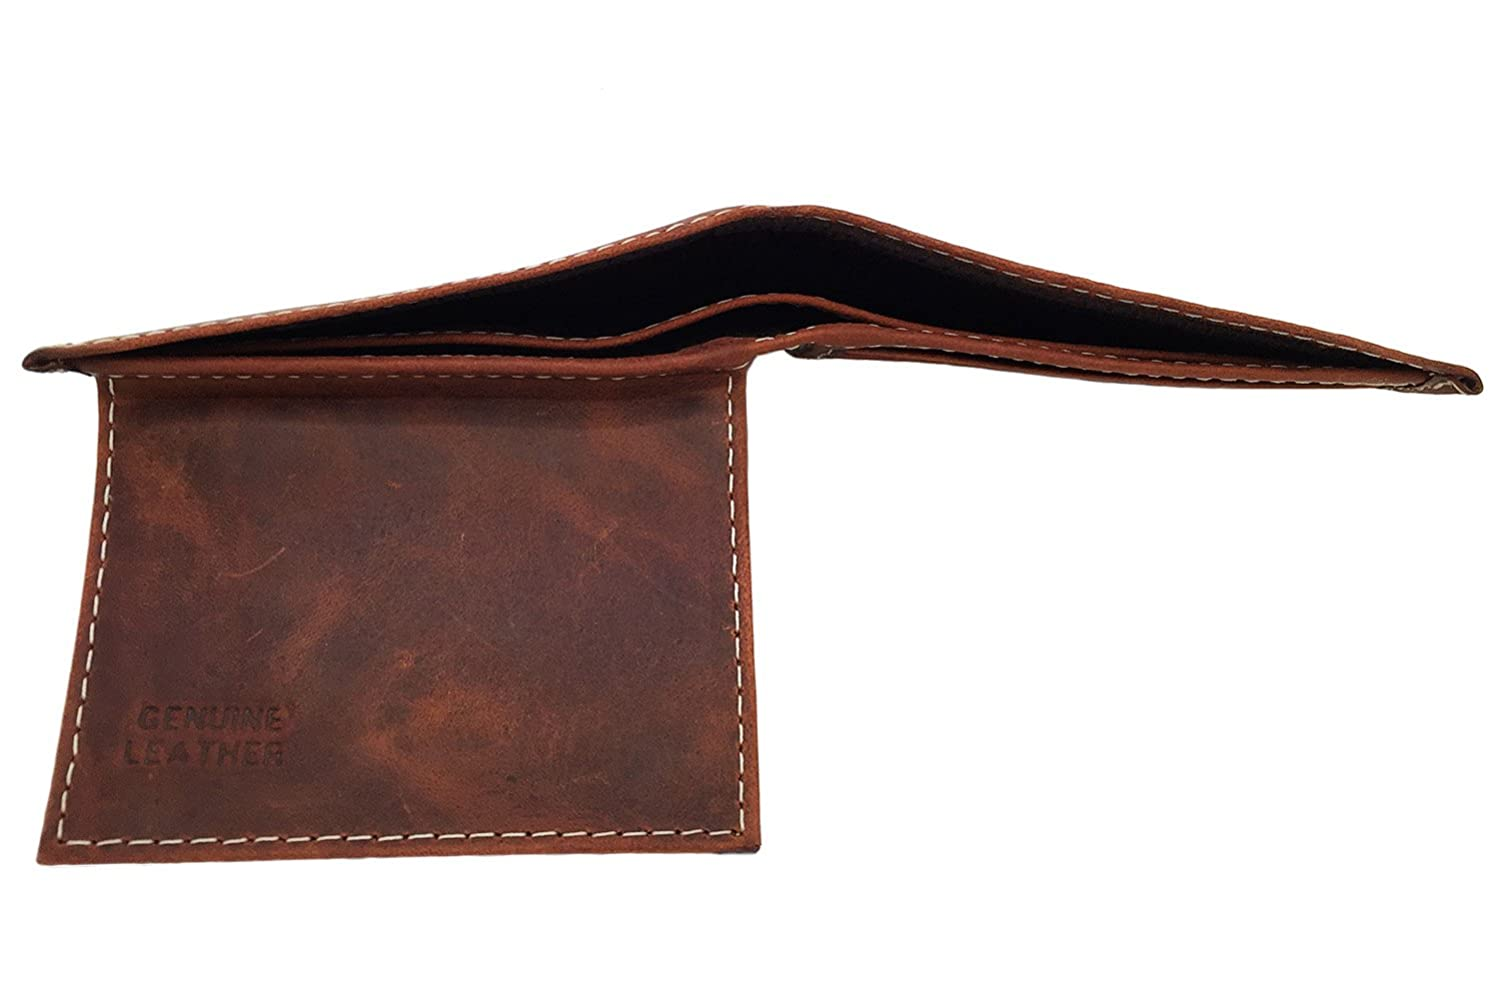 Wallet for Men 1 BEST Genuine 100/% Cowhide Leather Mens Handcrafted Bifold Wallet by AVIMA